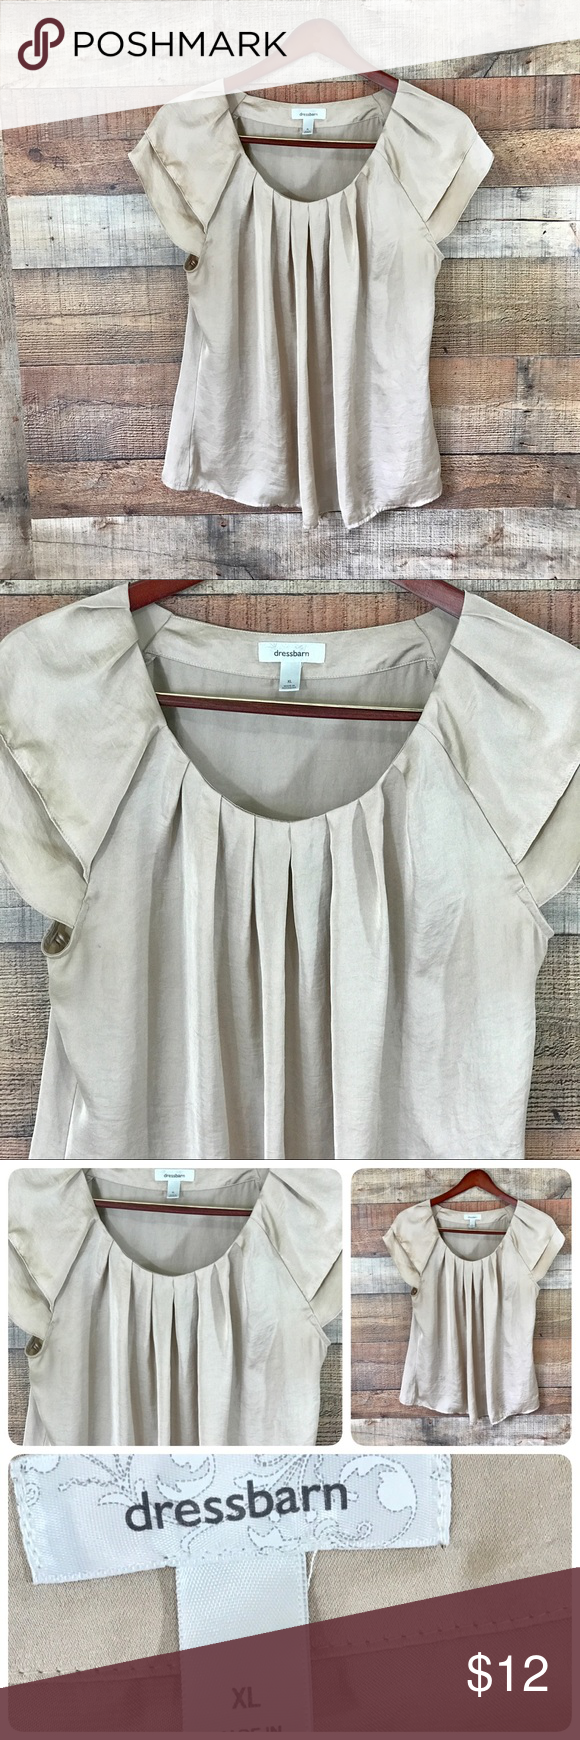 "Dress Barn XL Silky Bronze Tunic Top Pin Tucked scoop neck Top with double Ruffle sleeves. Easy Care Polyester Machine wash. Pit to pit measures 23"" Length 28"". Gently used with no flaws Dress Barn Tops Blouses"